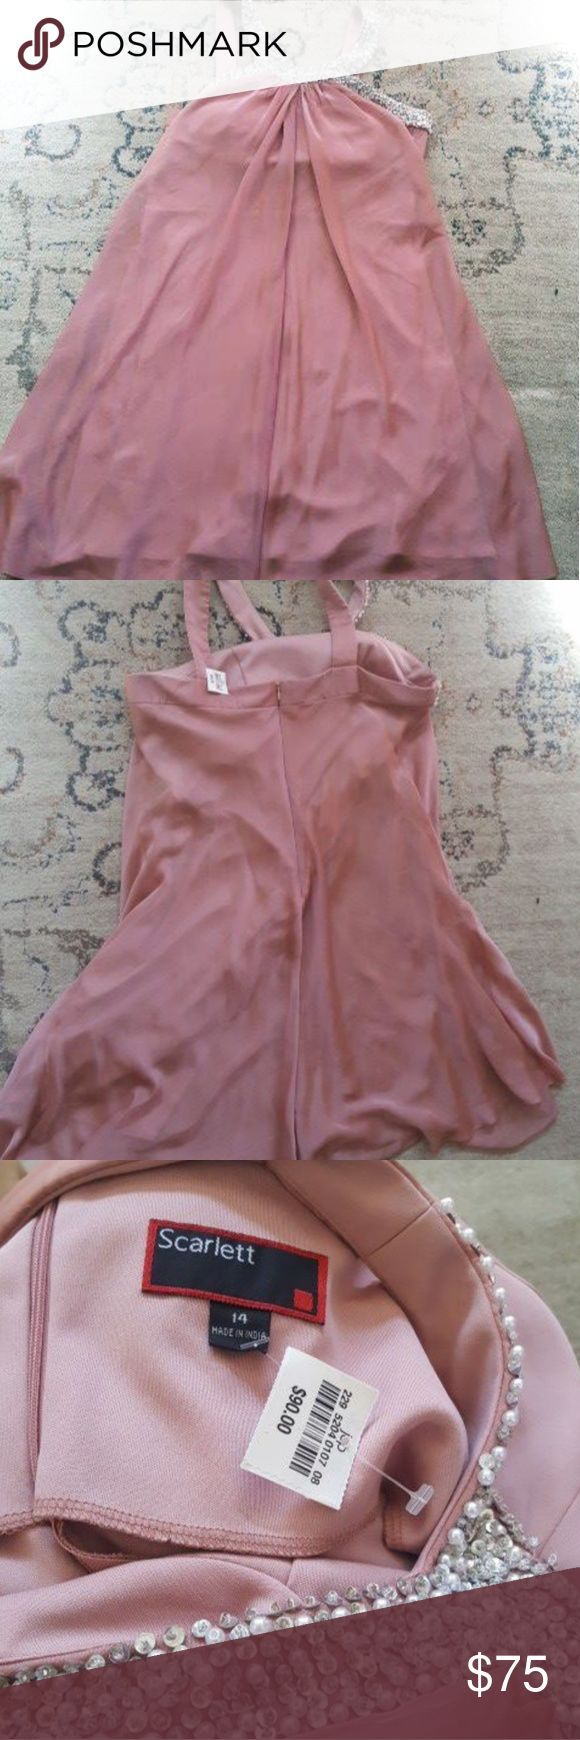 Scarlett Salmon color dress. Womens size 14 brand new never worn with tag. Salmon color with bedazzled collar. Scarlett Dresses Mini